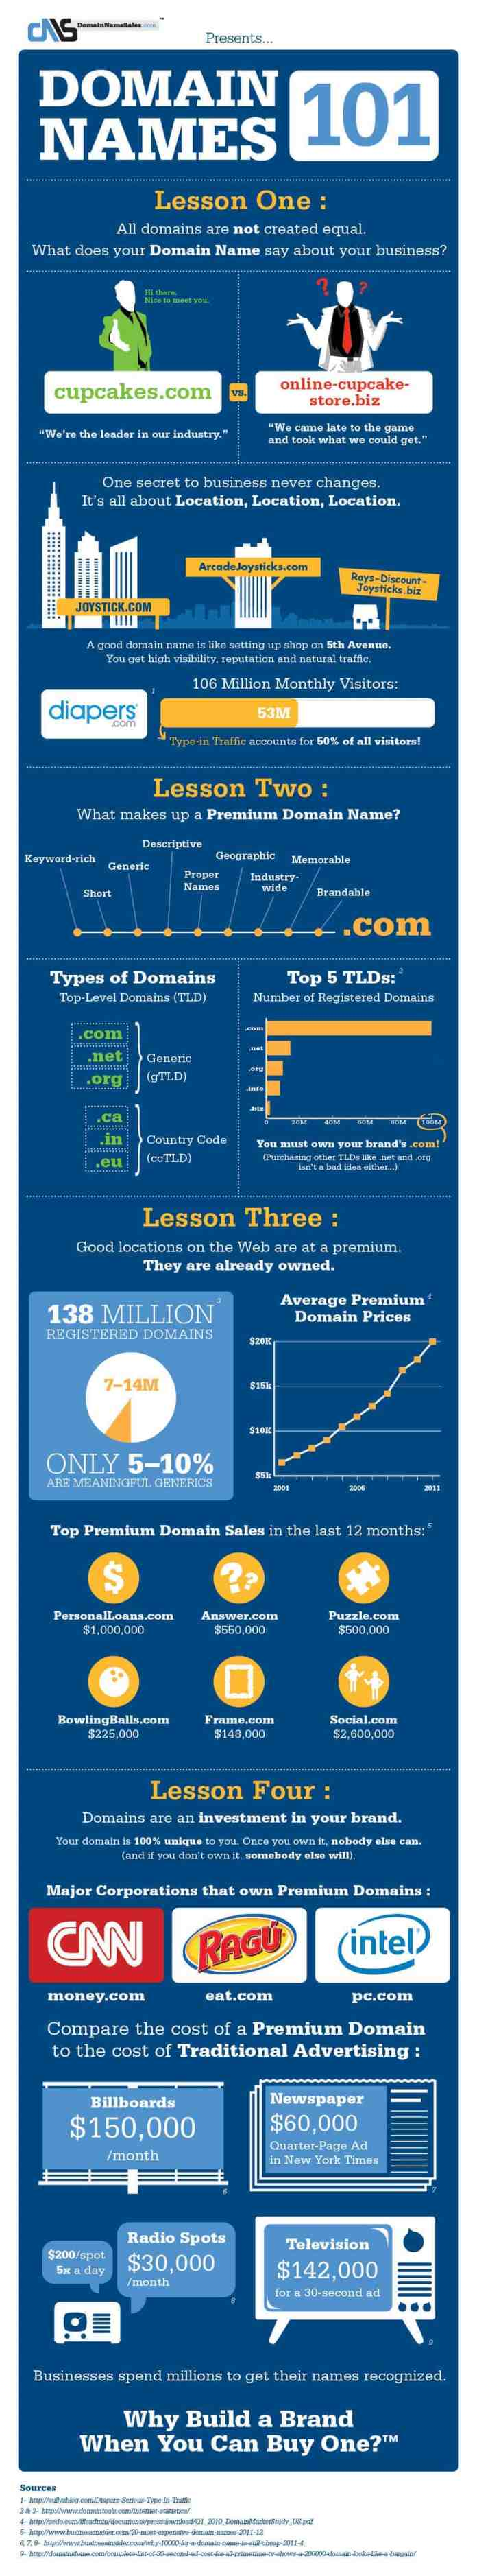 domain selling business infographic